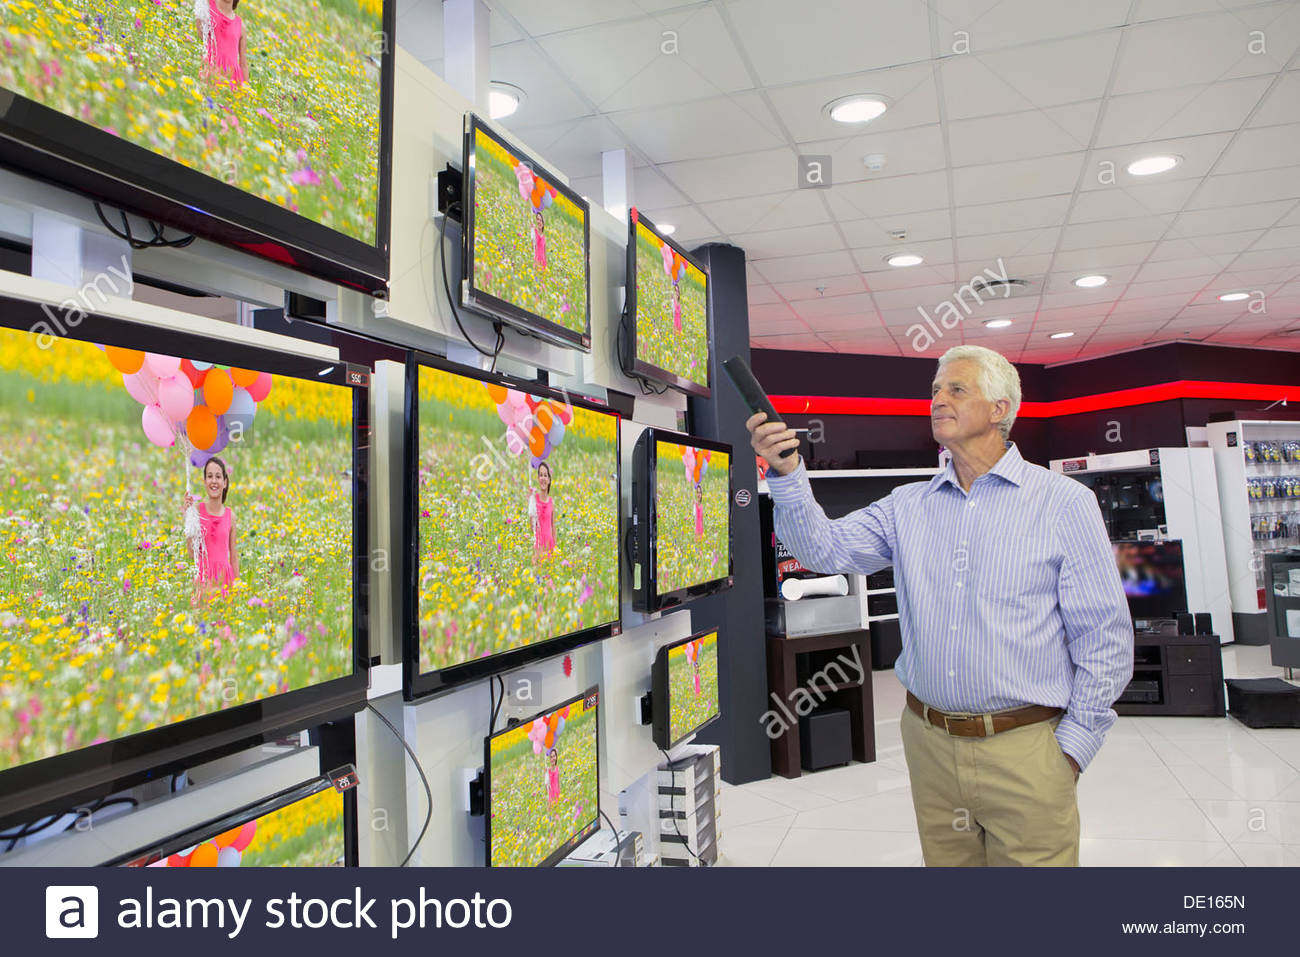 Senior man looking at flat screen televisions in electronics store - Stock Image